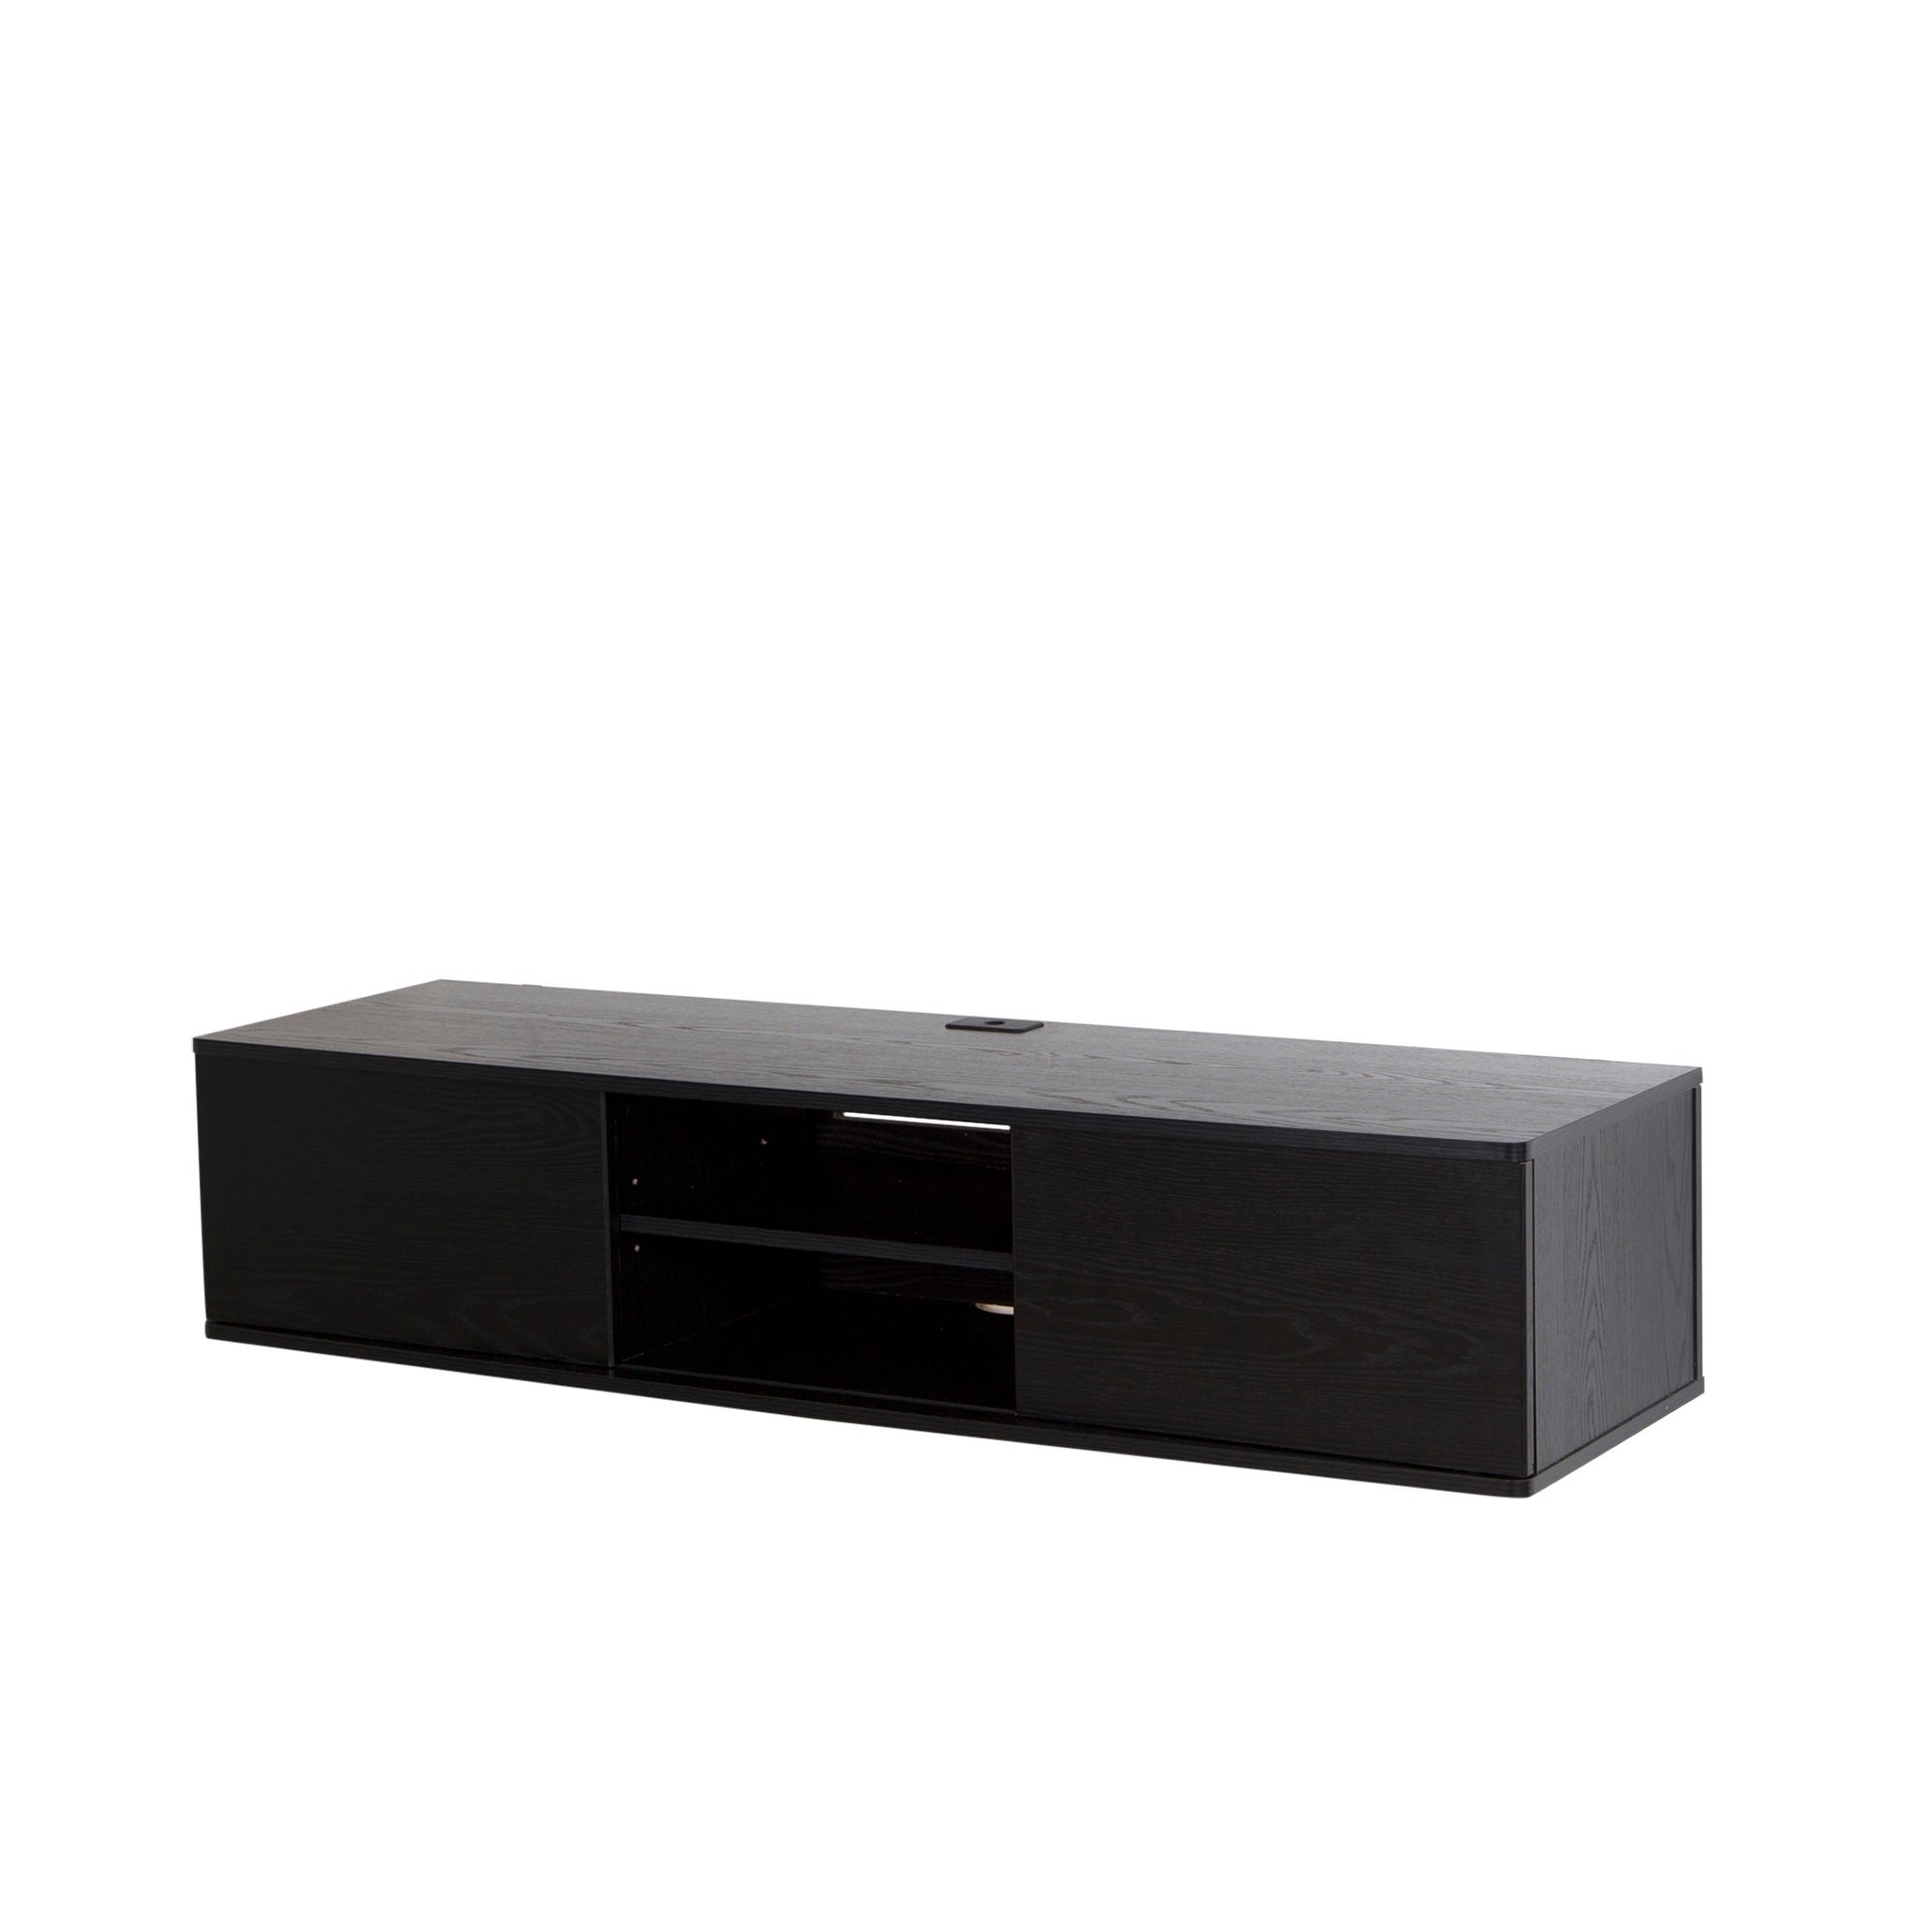 04984db6de0fc8 Shop South Shore Agora 56-inch Wall Mounted Media Console - On Sale - Free  Shipping Today - Overstock - 10344005